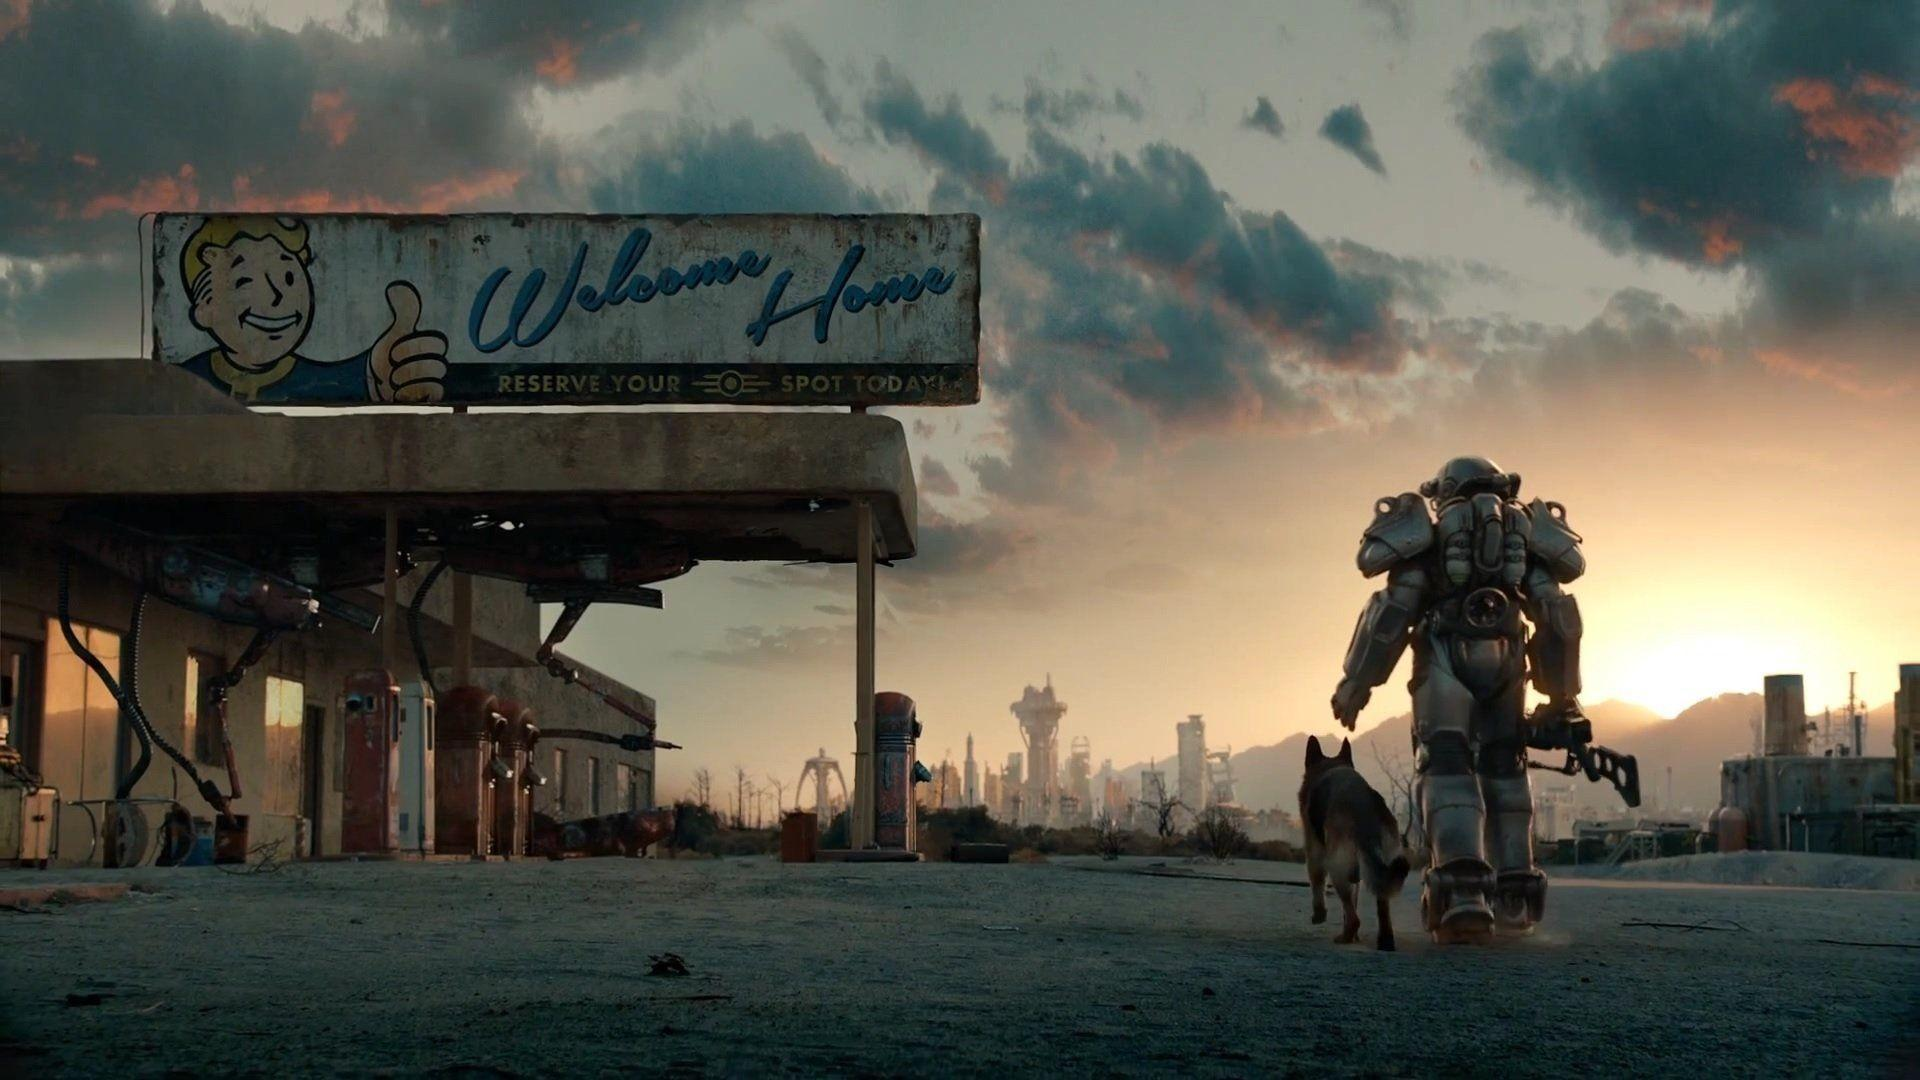 Fallout 4 wallpaper – Give Your Desktop a Cool New Look!